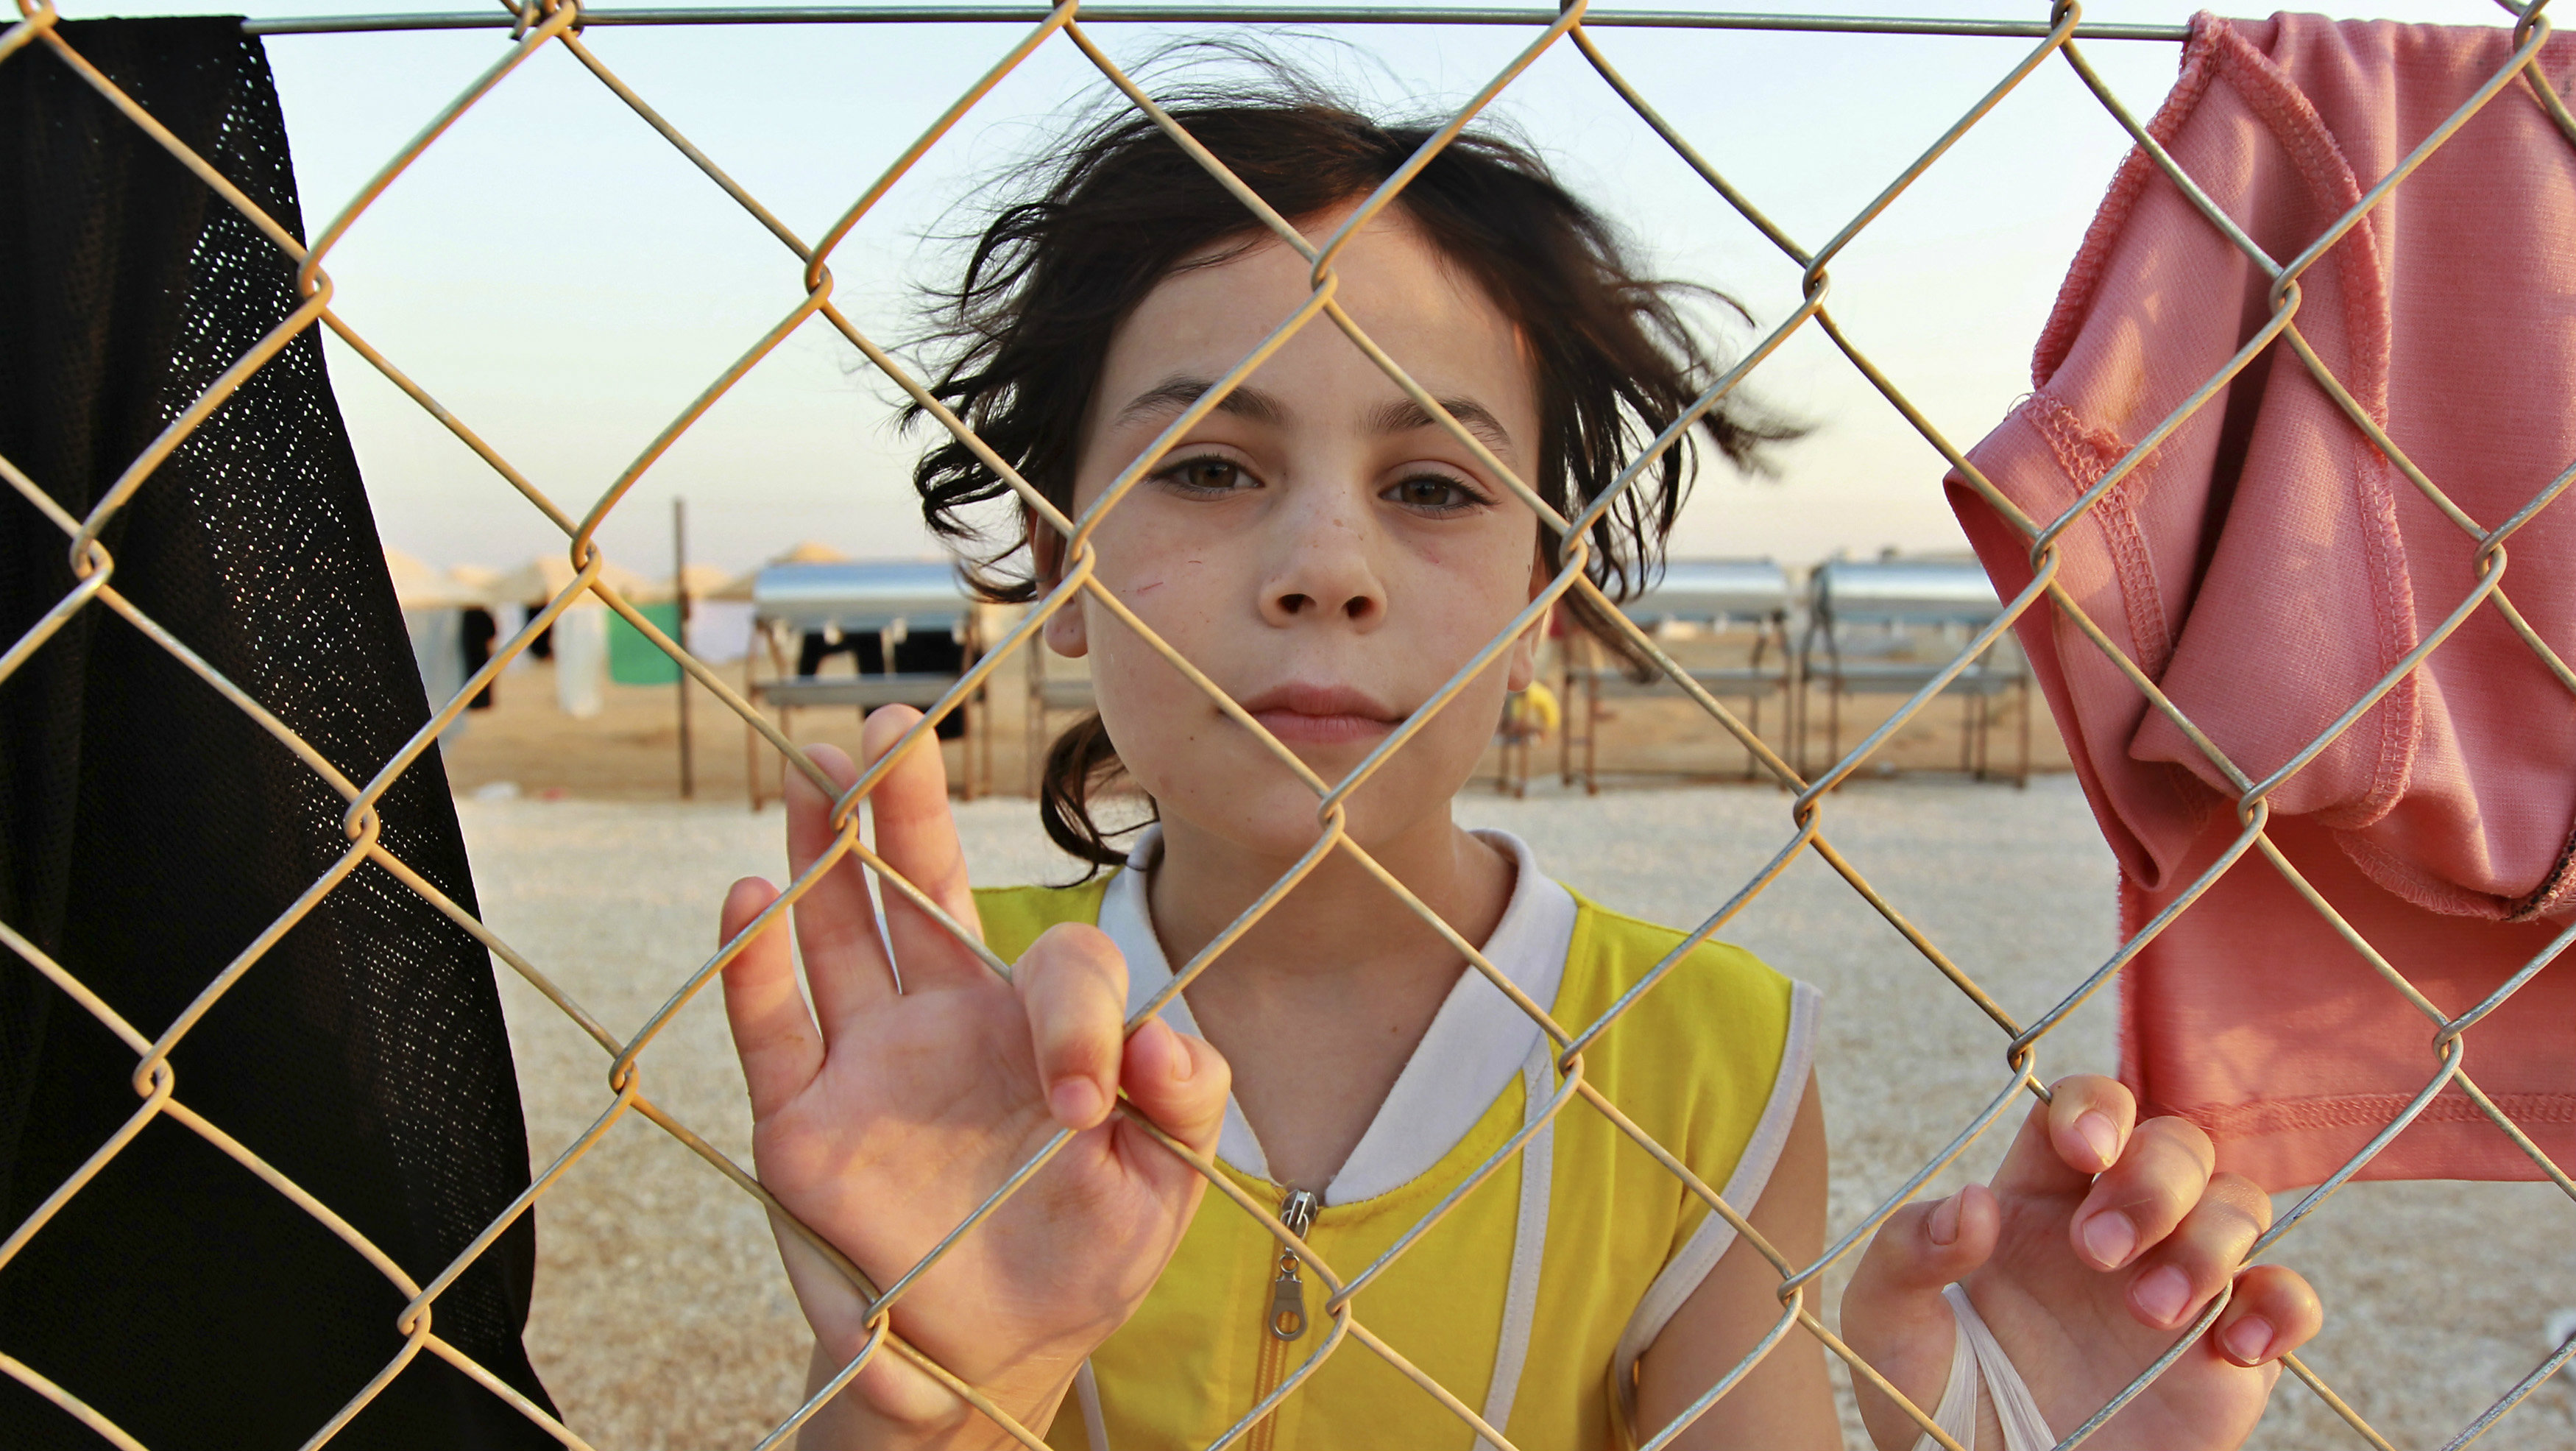 A Syrian refugee is pictured at the Al Zaatri refugee camp in the Jordanian city of Mafraq, near the border with Syria, July 31, 2012.